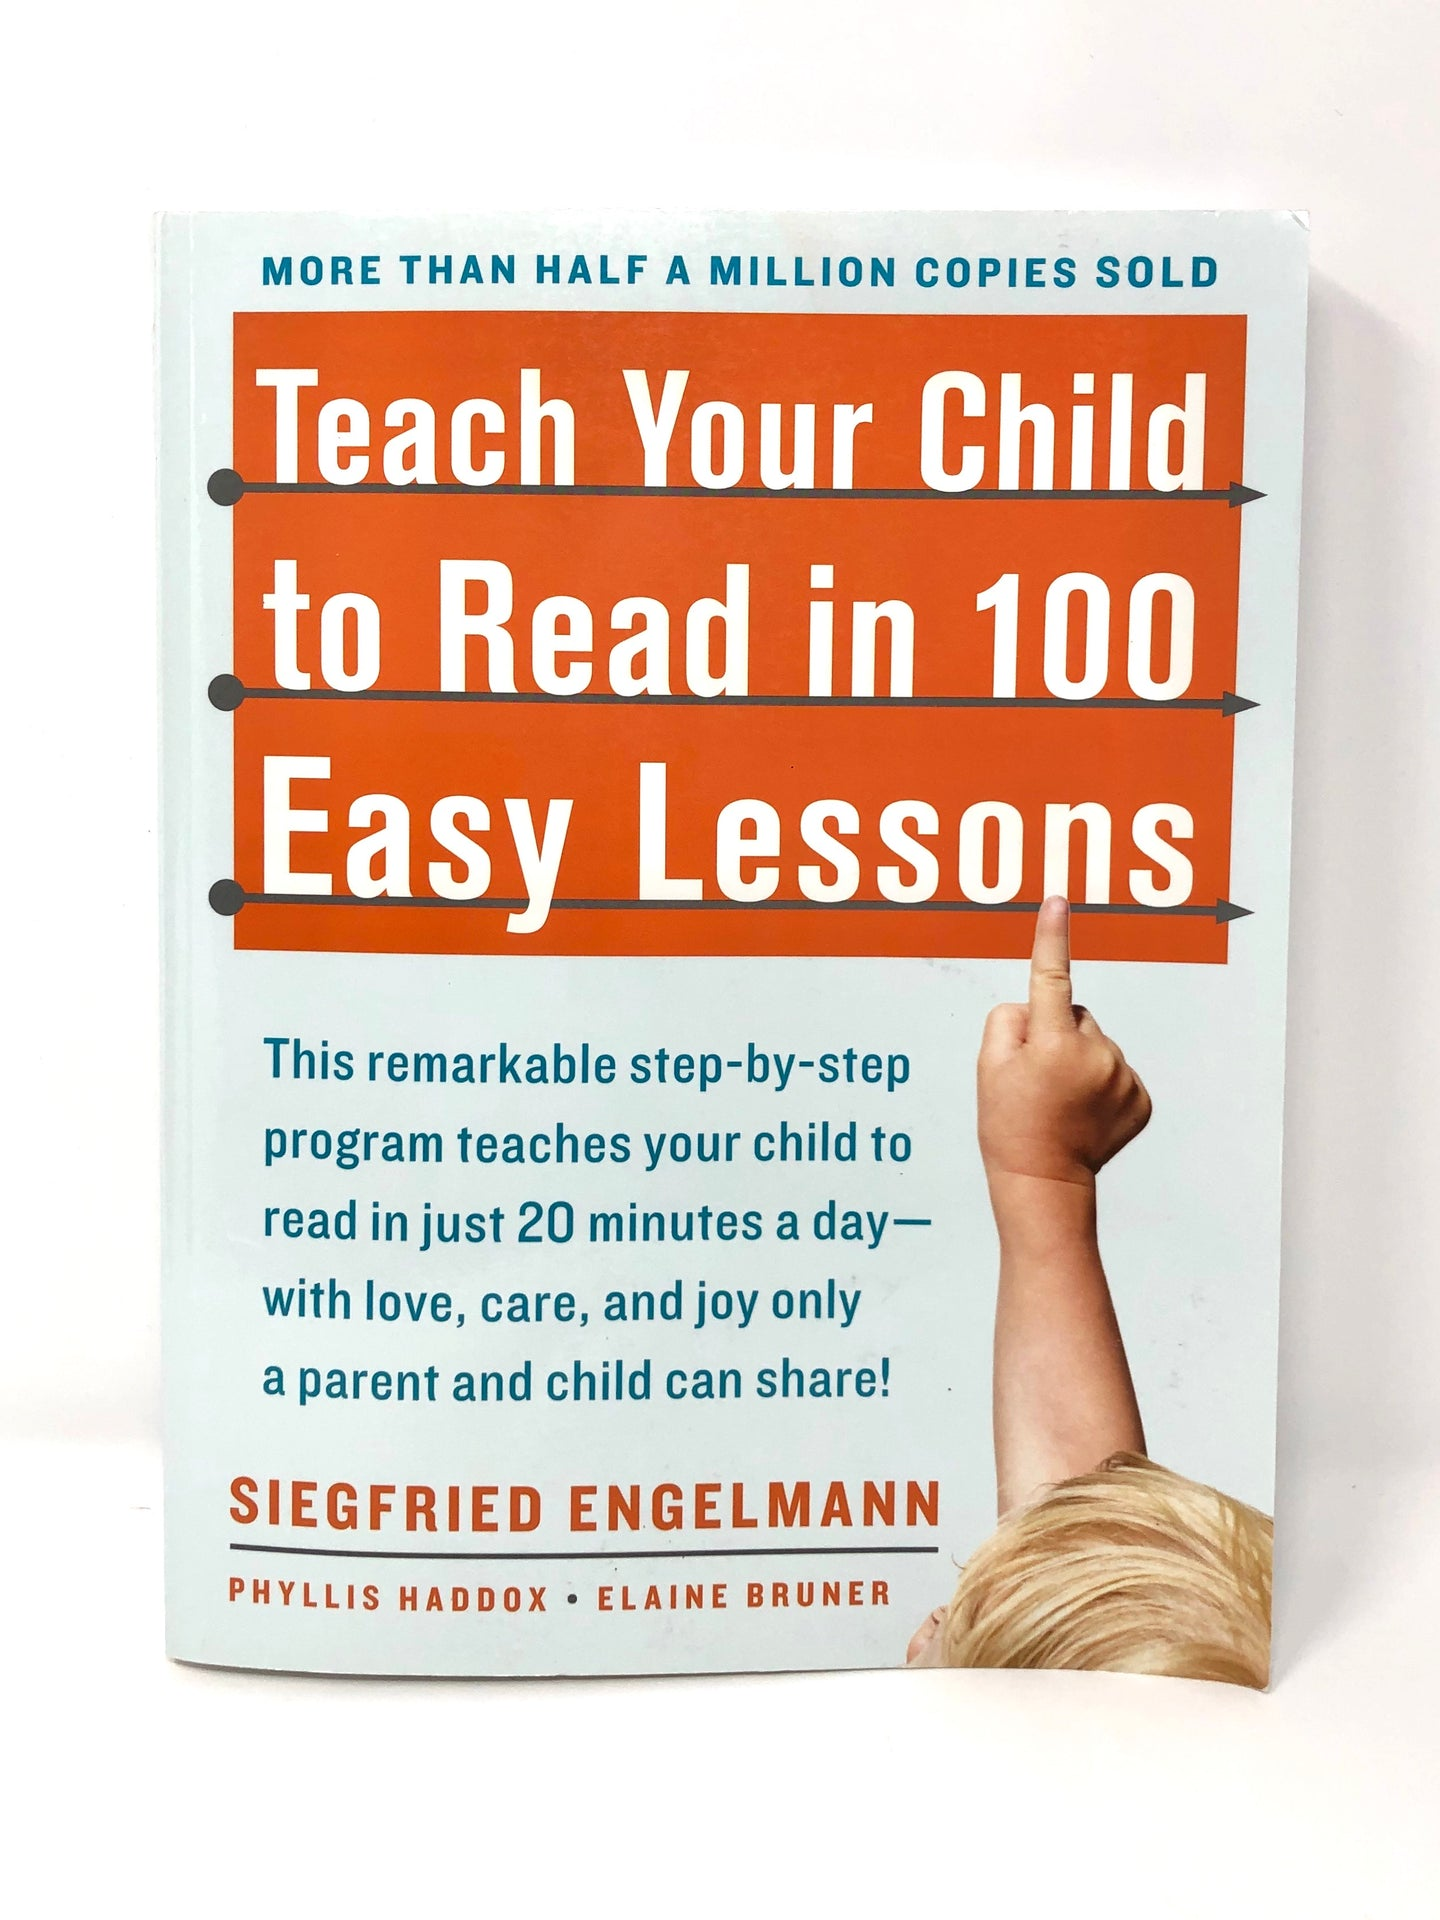 Teach Your Child to Read in 100 Easy Lessons-Siegfried Engelmann (Used-Good) - Little Green Schoolhouse Books